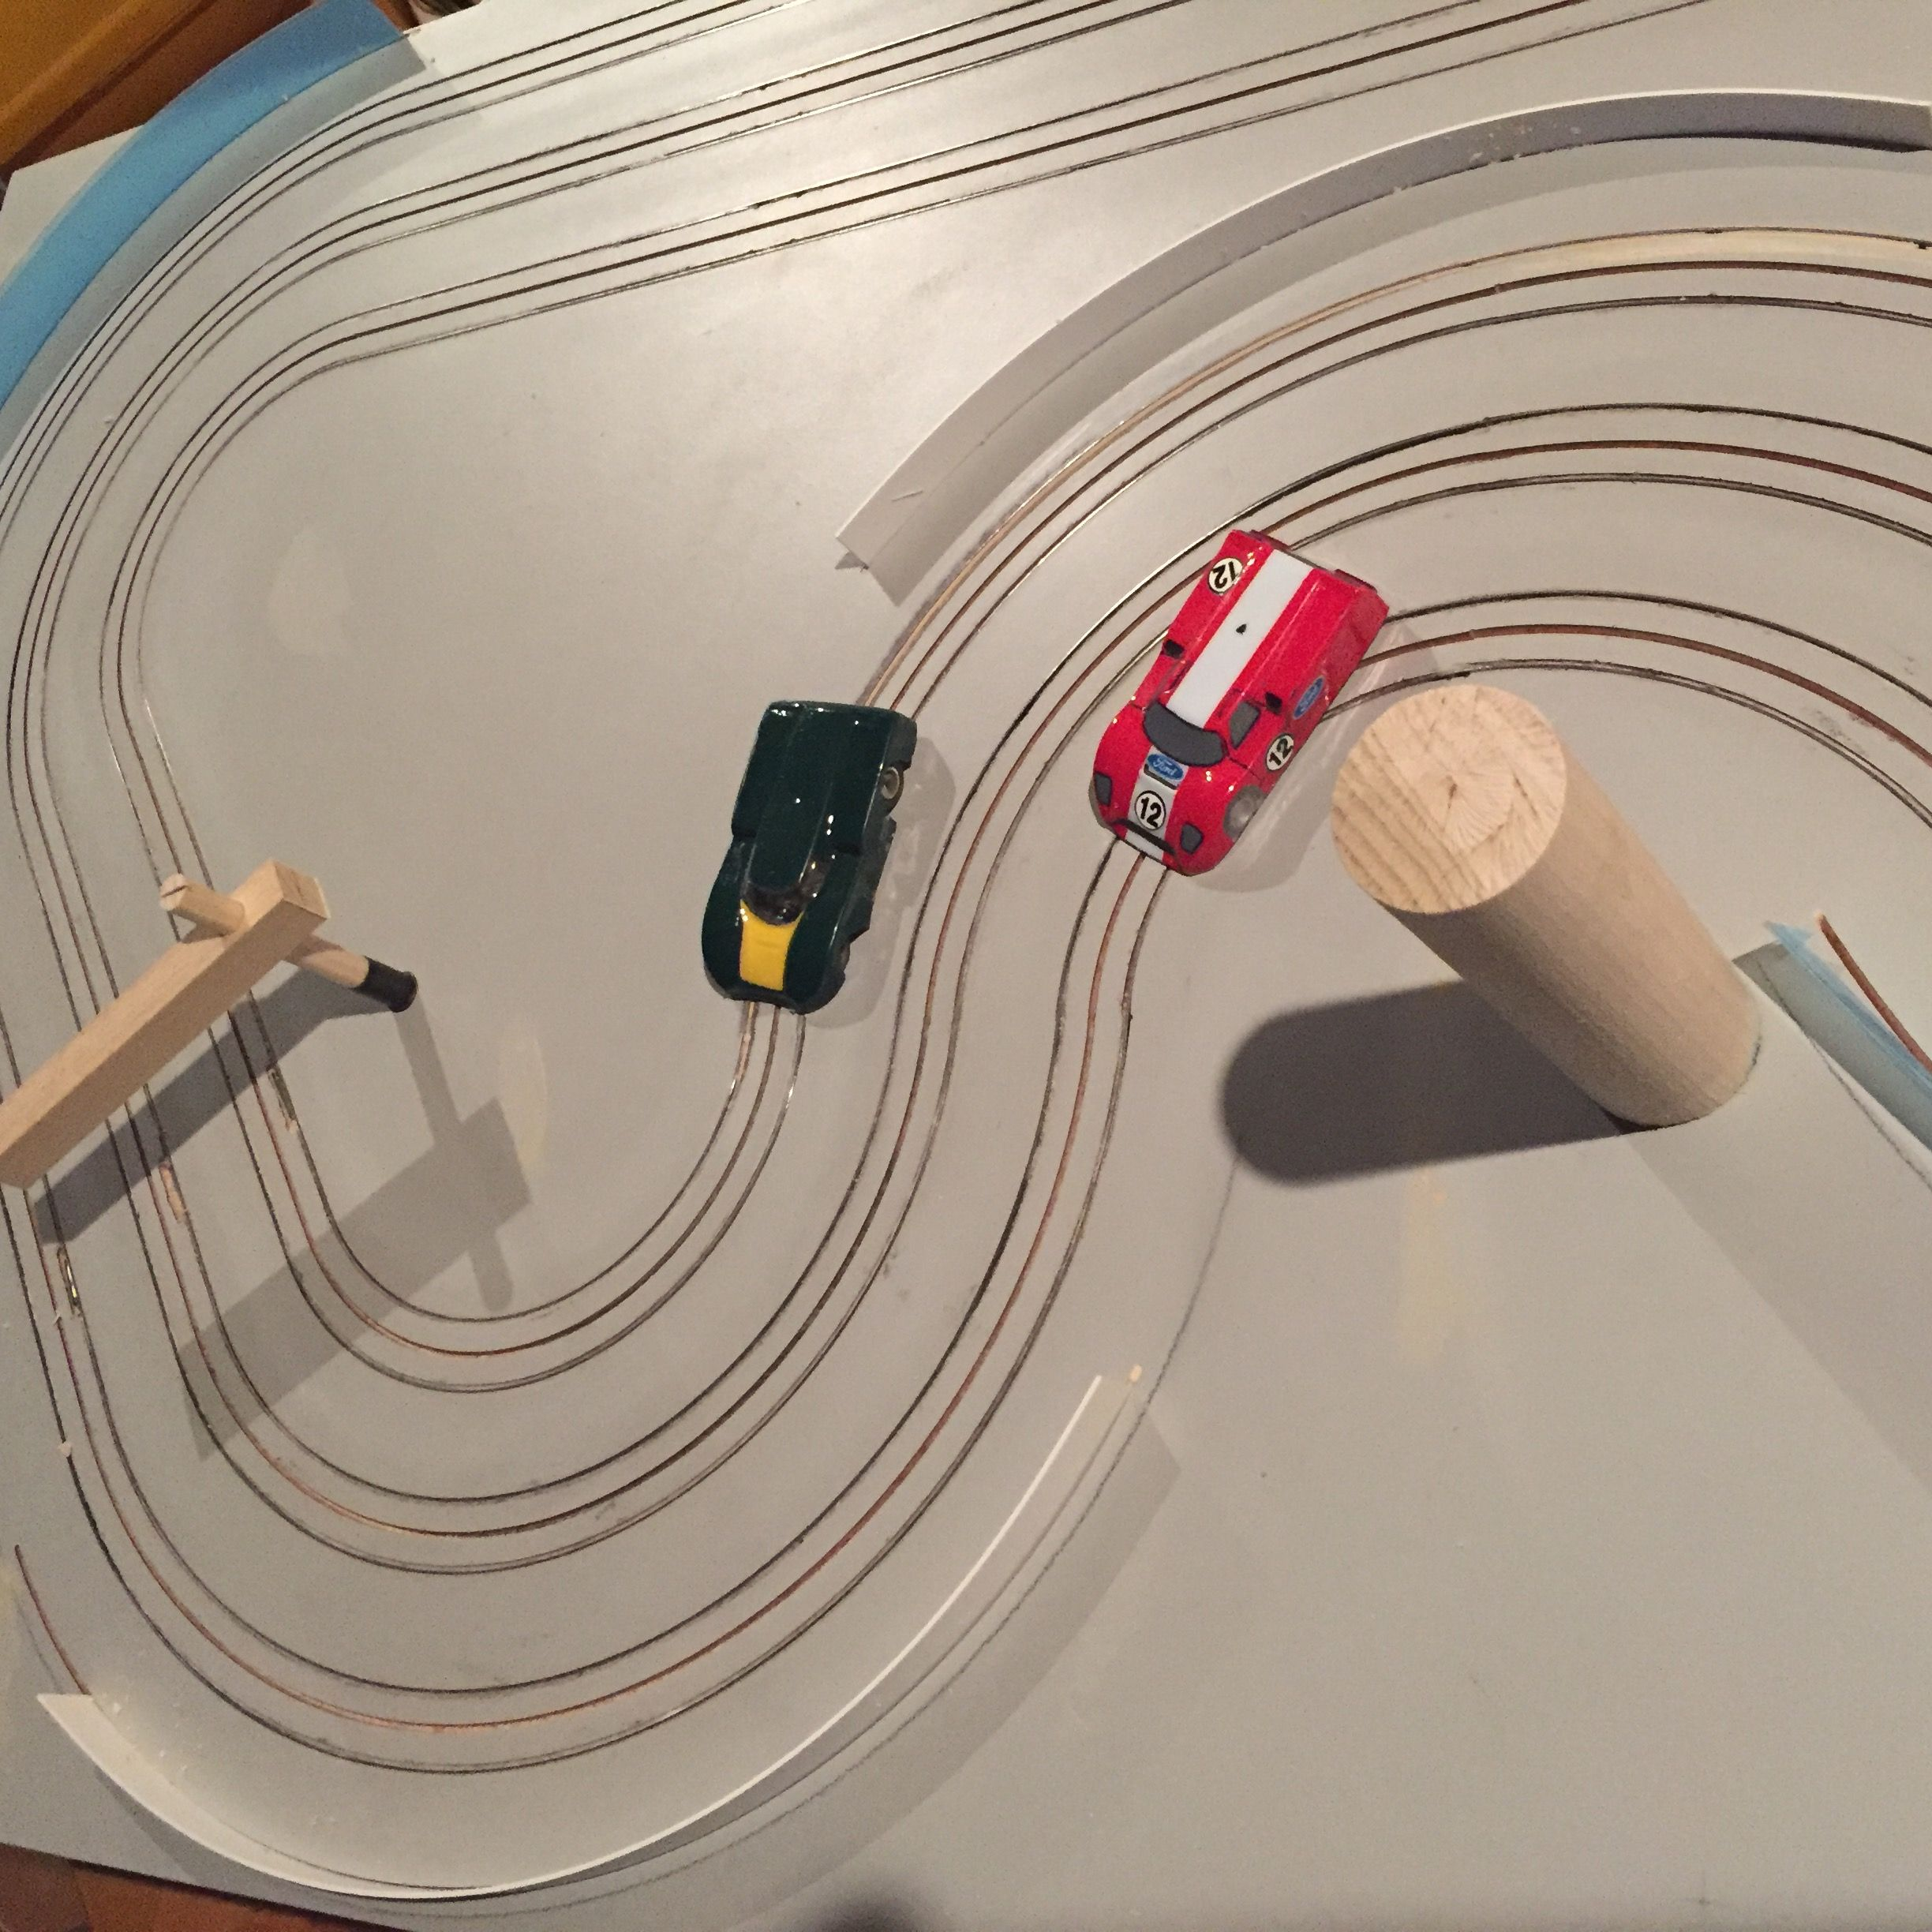 3 lane small 2x4 routed ho slot car track [ 2448 x 2448 Pixel ]